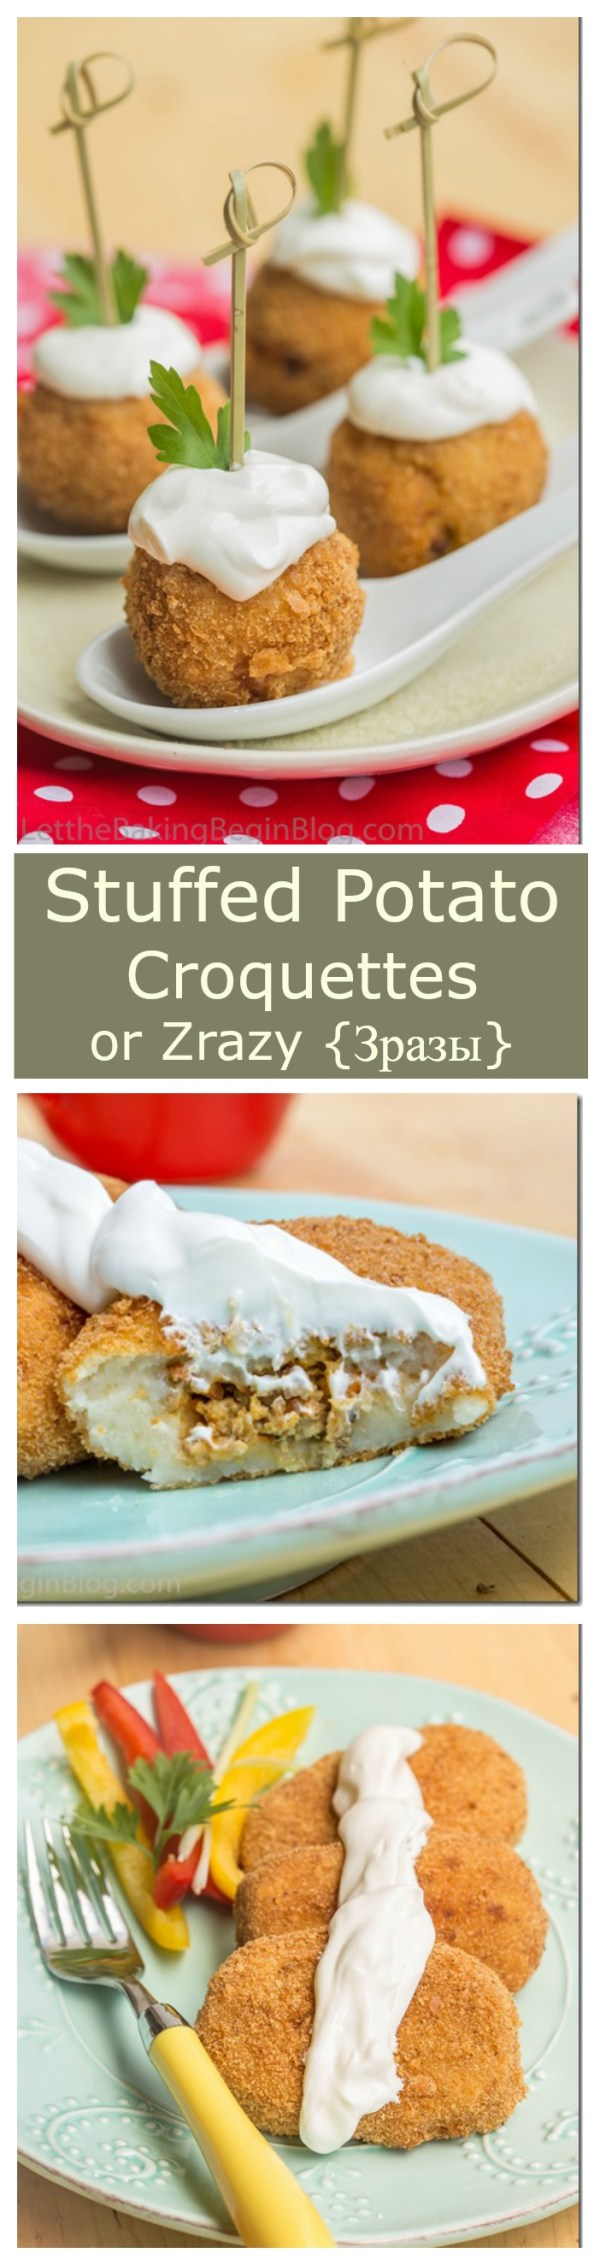 Stuffed Potato Croquettes or Mashed Potato Pancakes filled with Meat are perfect dish to make with leftover mashed potatoes.